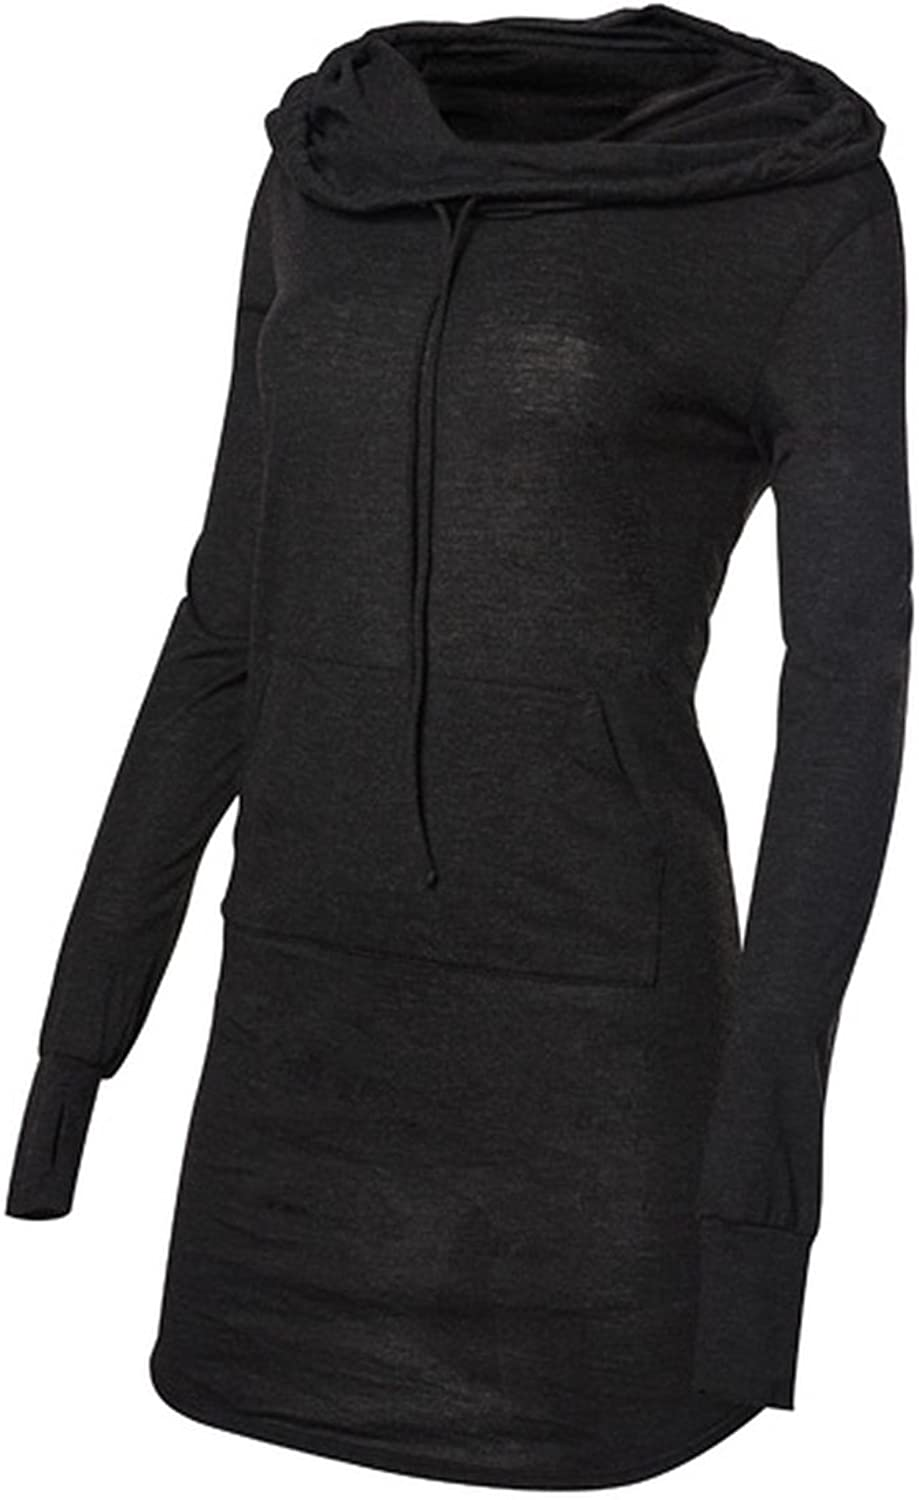 TYR Women's Coverups Zoe Hooded Dress